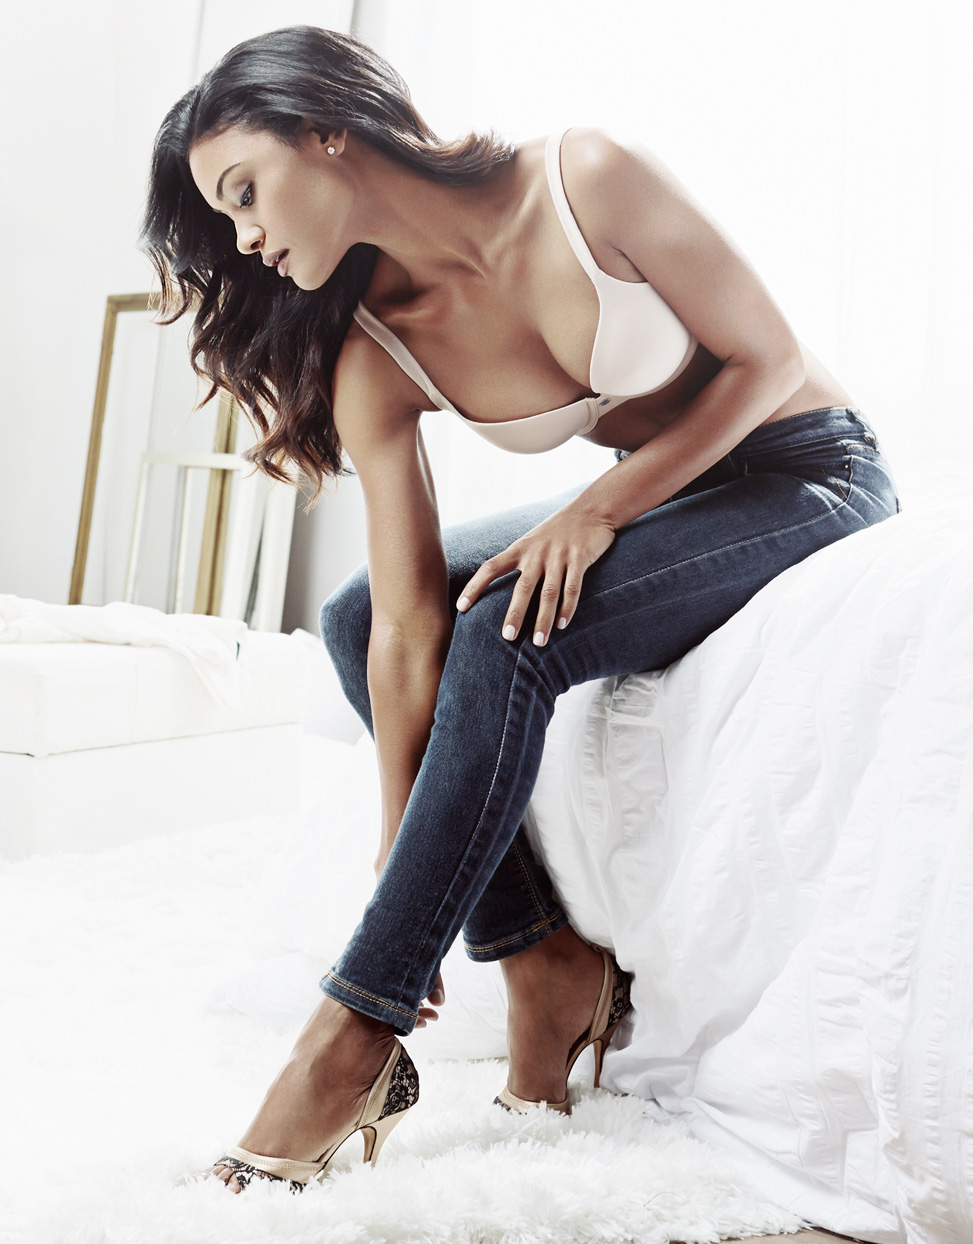 Mark DeLong - Beauty Photographer - Brunette woman wearing cream colored bra and long blue denim jeans putting on her gold high heels